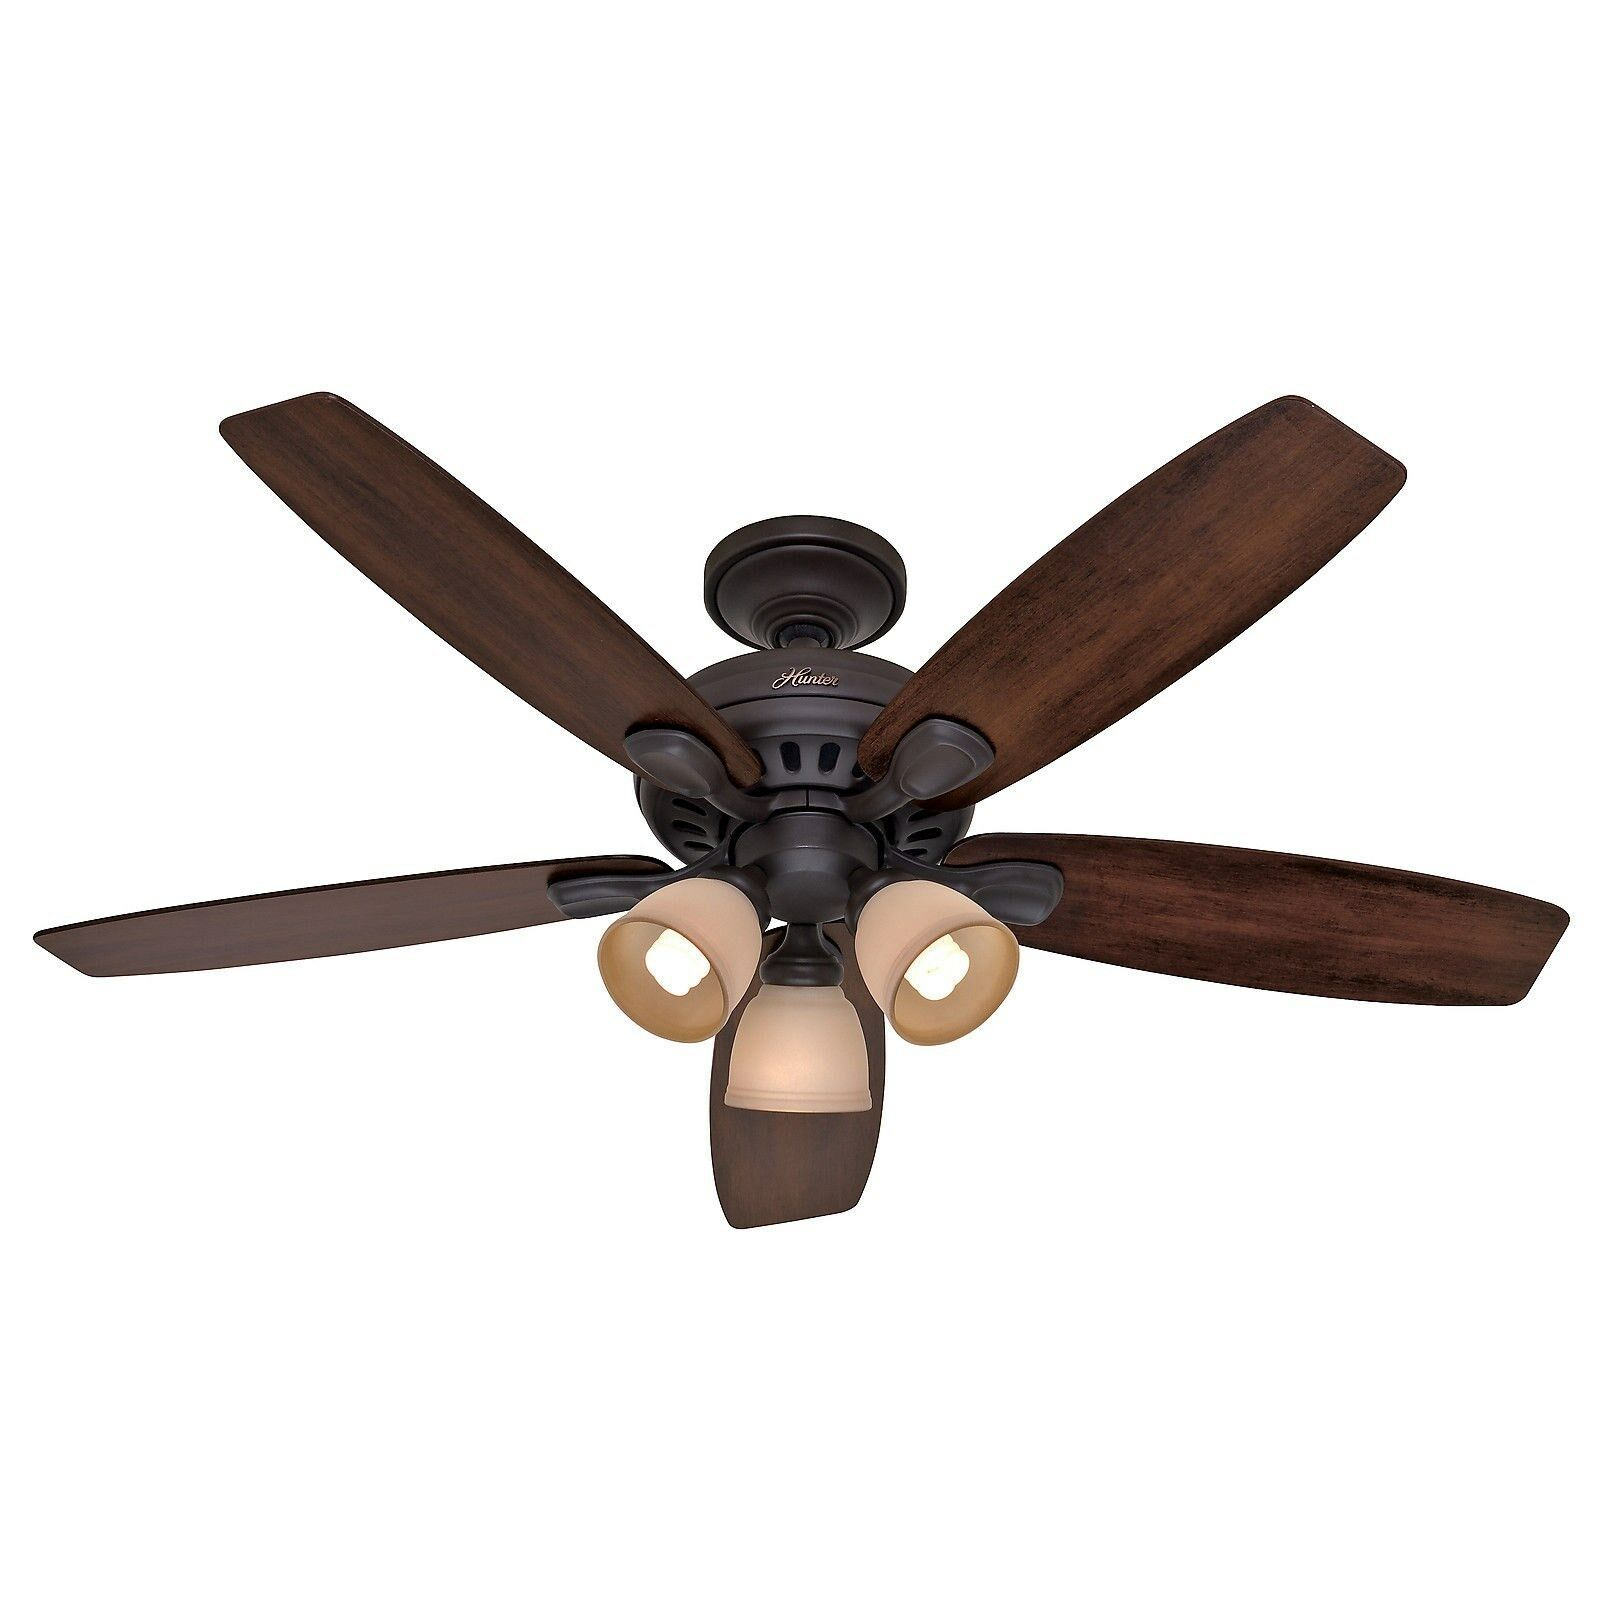 Hunter 52 In. New Bronze Ceiling Fan With Light & Remote